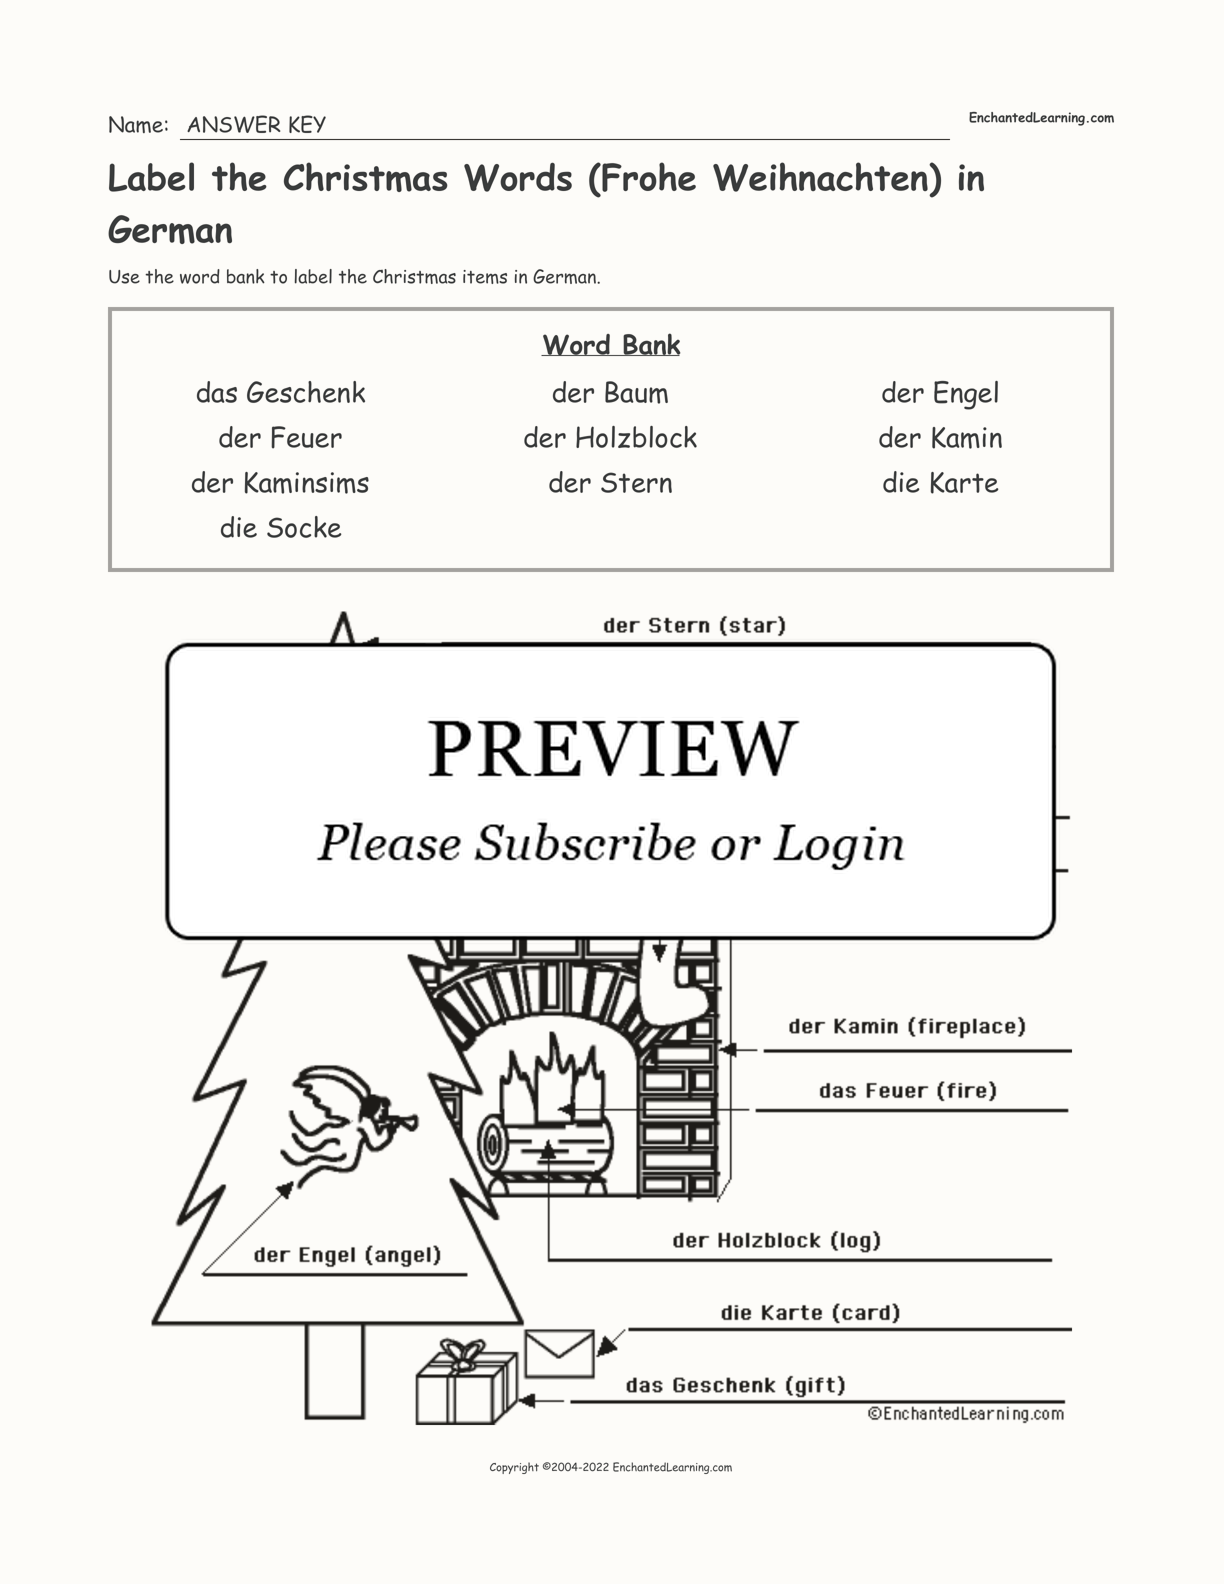 Label the Christmas Words (Frohe Weihnachten) in German interactive worksheet page 2